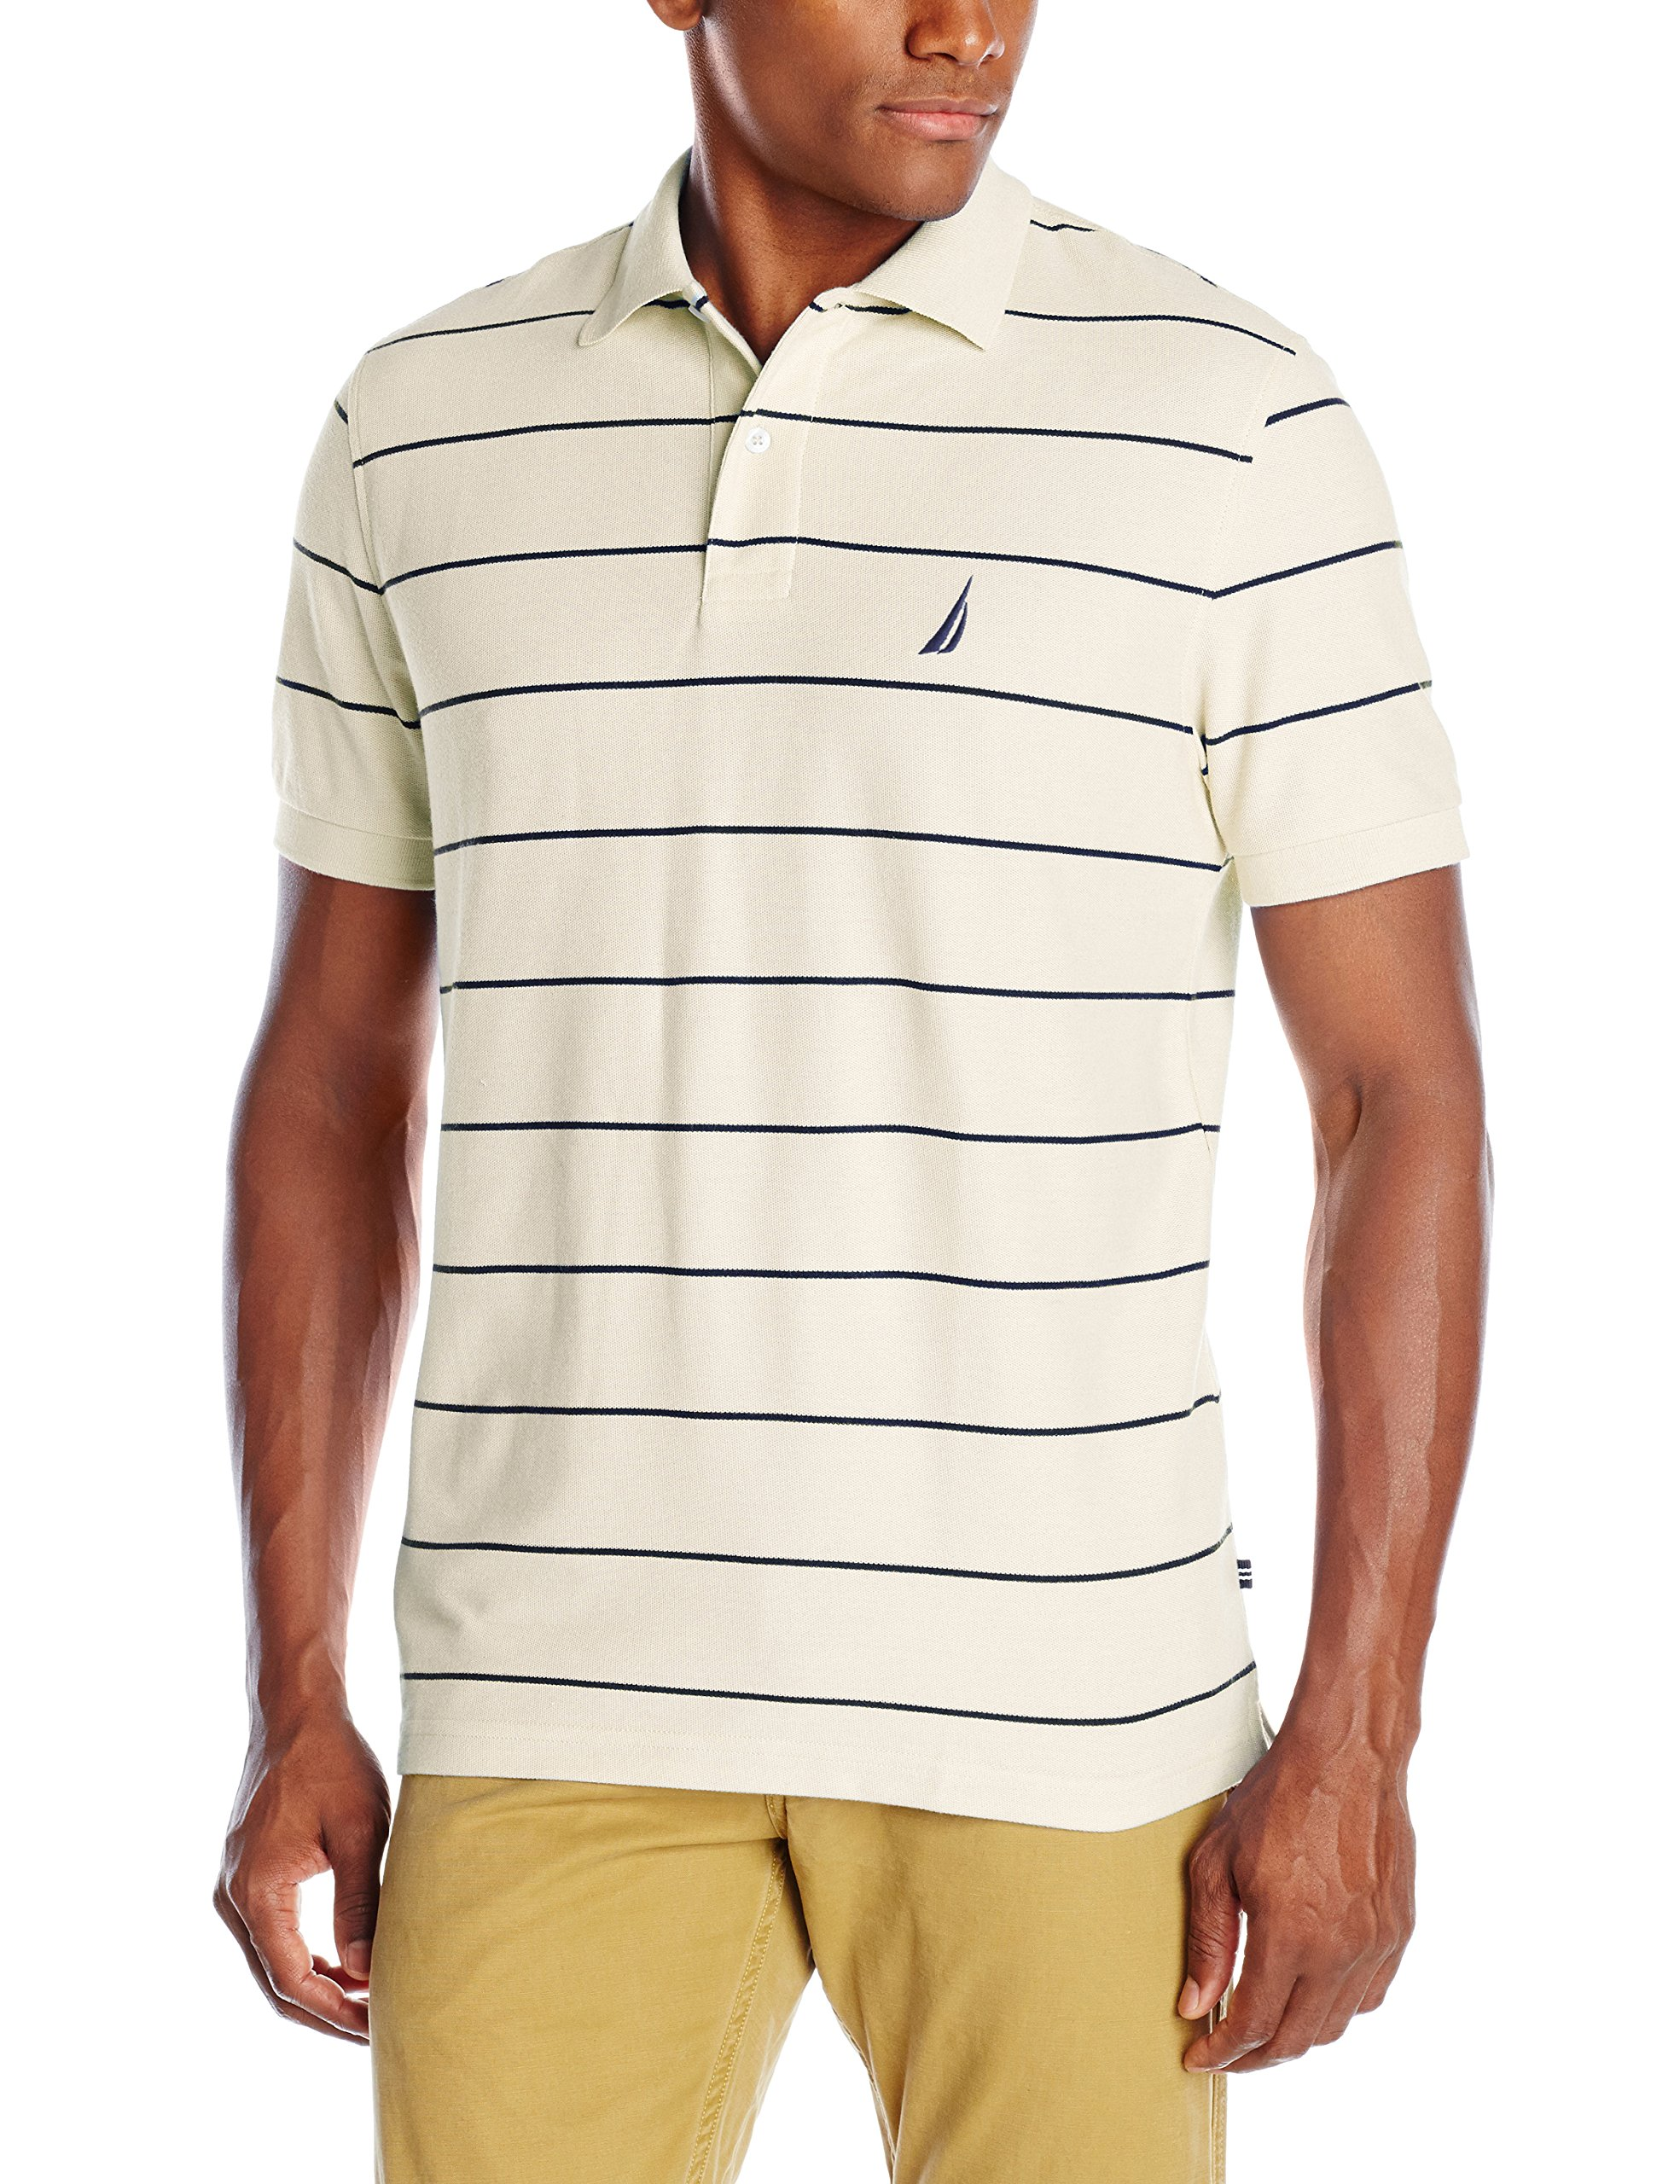 Nautica Men\u0027s Stripe Deck Anchor Polo, Sail Cream, XX-Large product image